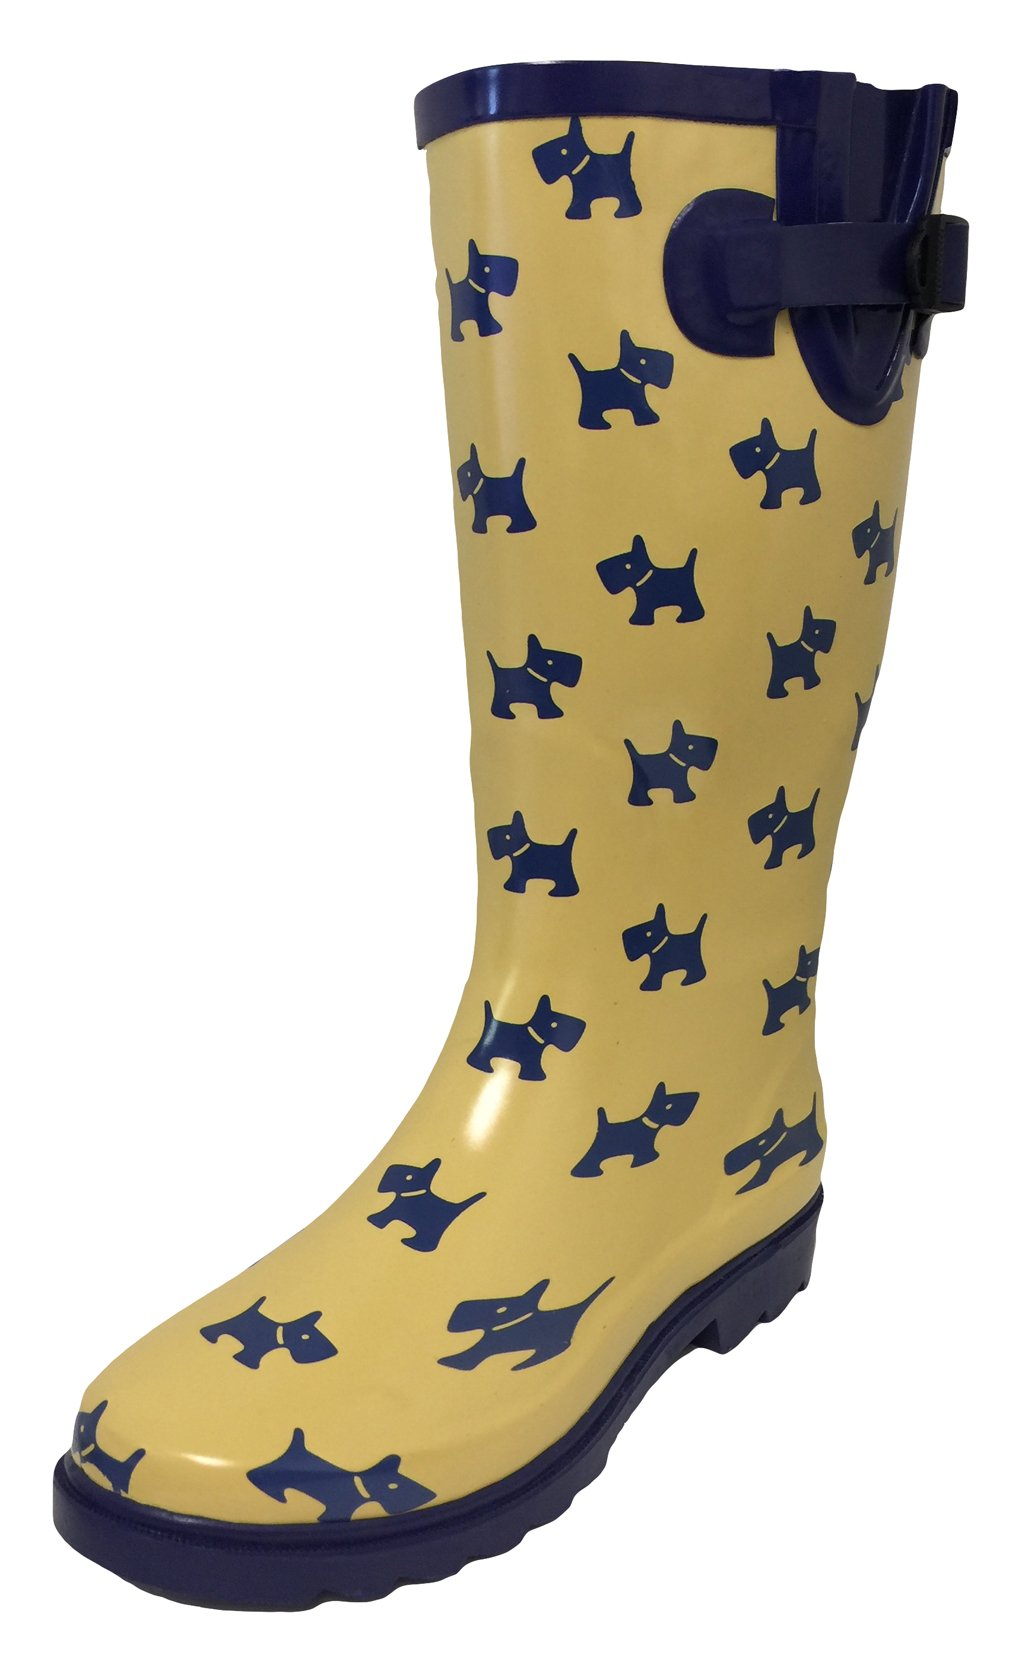 G4U Women's Rain Boots Multiple Styles Color Mid Calf Wellies Buckle Fashion Rubber Knee High Snow Shoes (9 B(M) US, Yellow/Puppies)